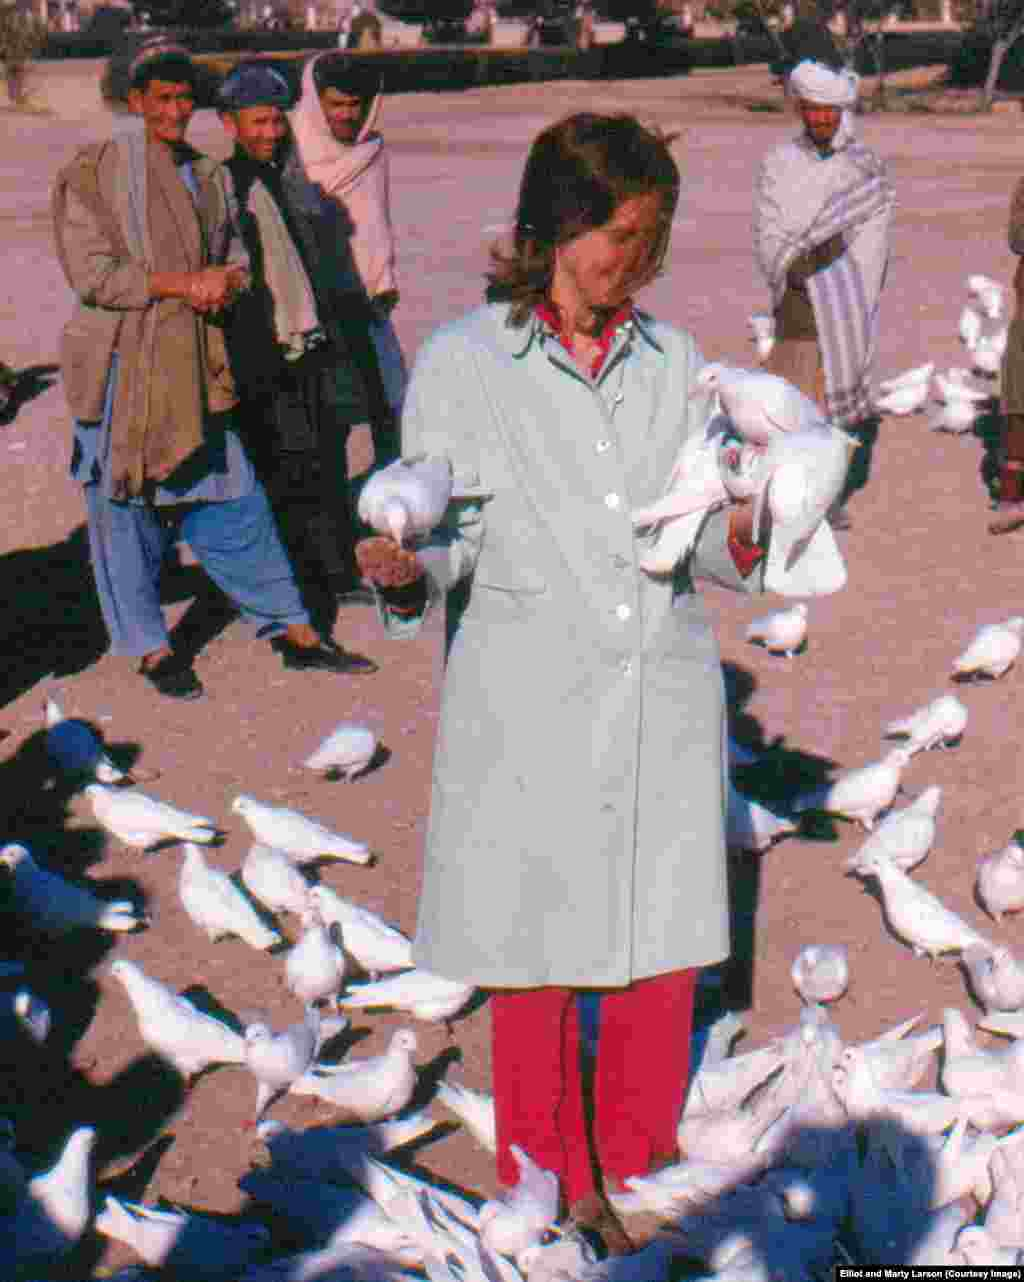 Marty Larson feeds doves at the Blue Mosque in Mazar-e Sharif.